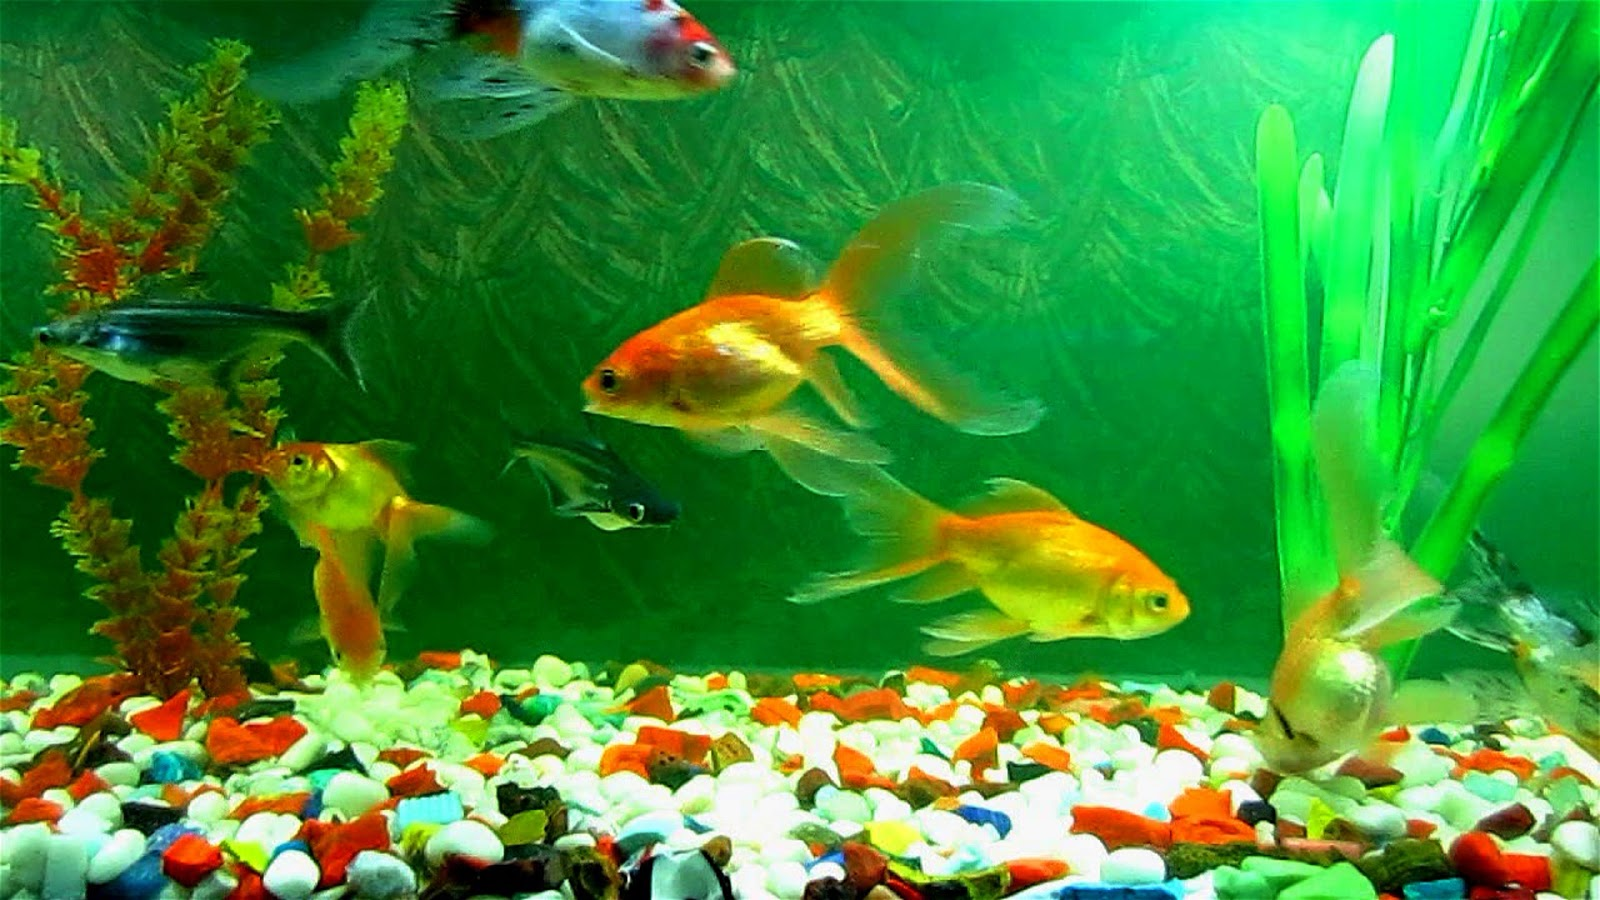 Spring cleaning tips for your fish aquarium wishforpets for Live to fish